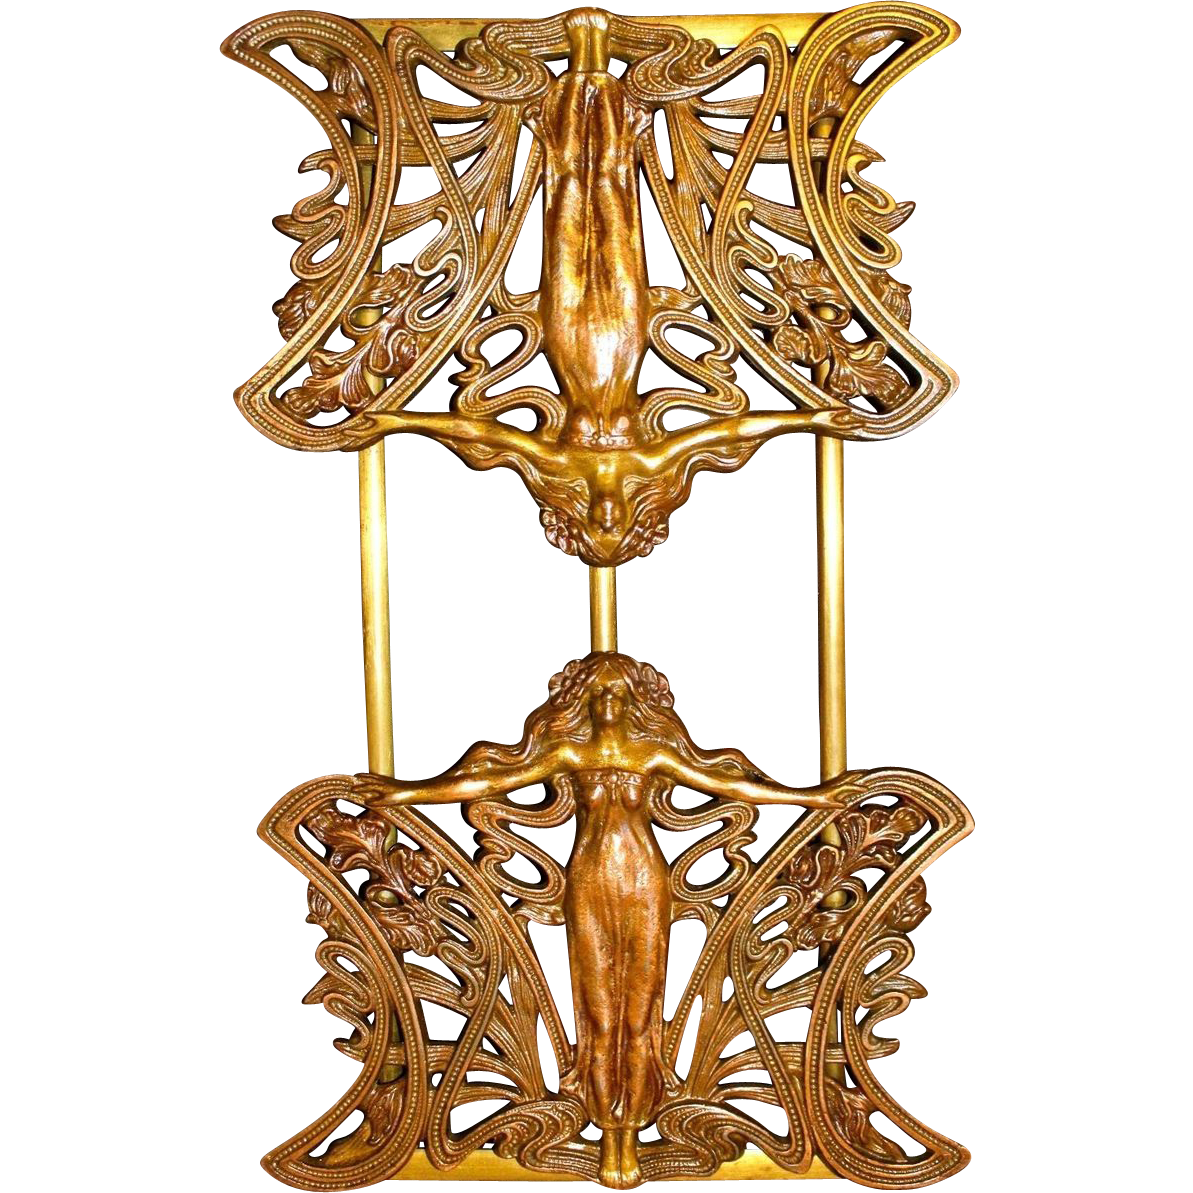 Exquisite Art Nouveau Bronzed Maiden Bookrack C. 1900